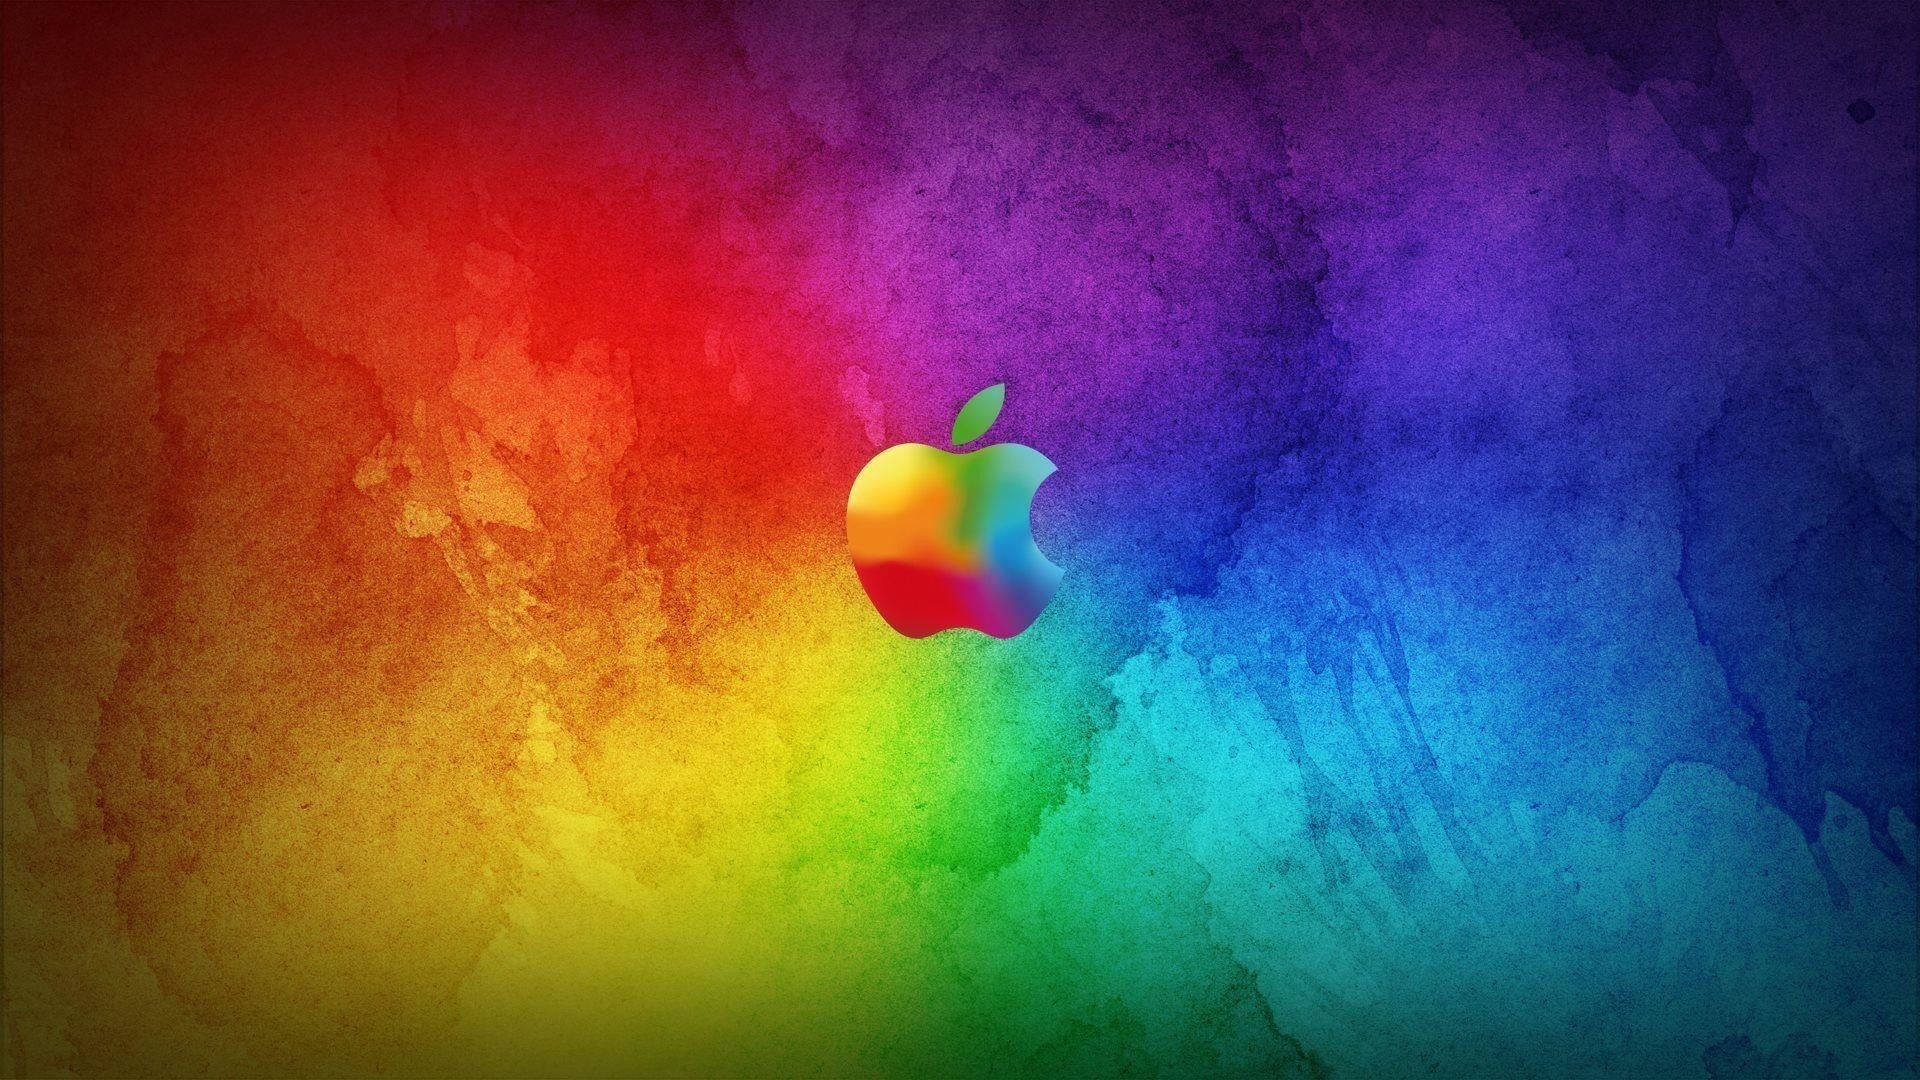 Apple Logo Hd Wallpapers For Iphone 1920 1080 Apple Logo: Cool Apple Logo Wallpaper ·① WallpaperTag